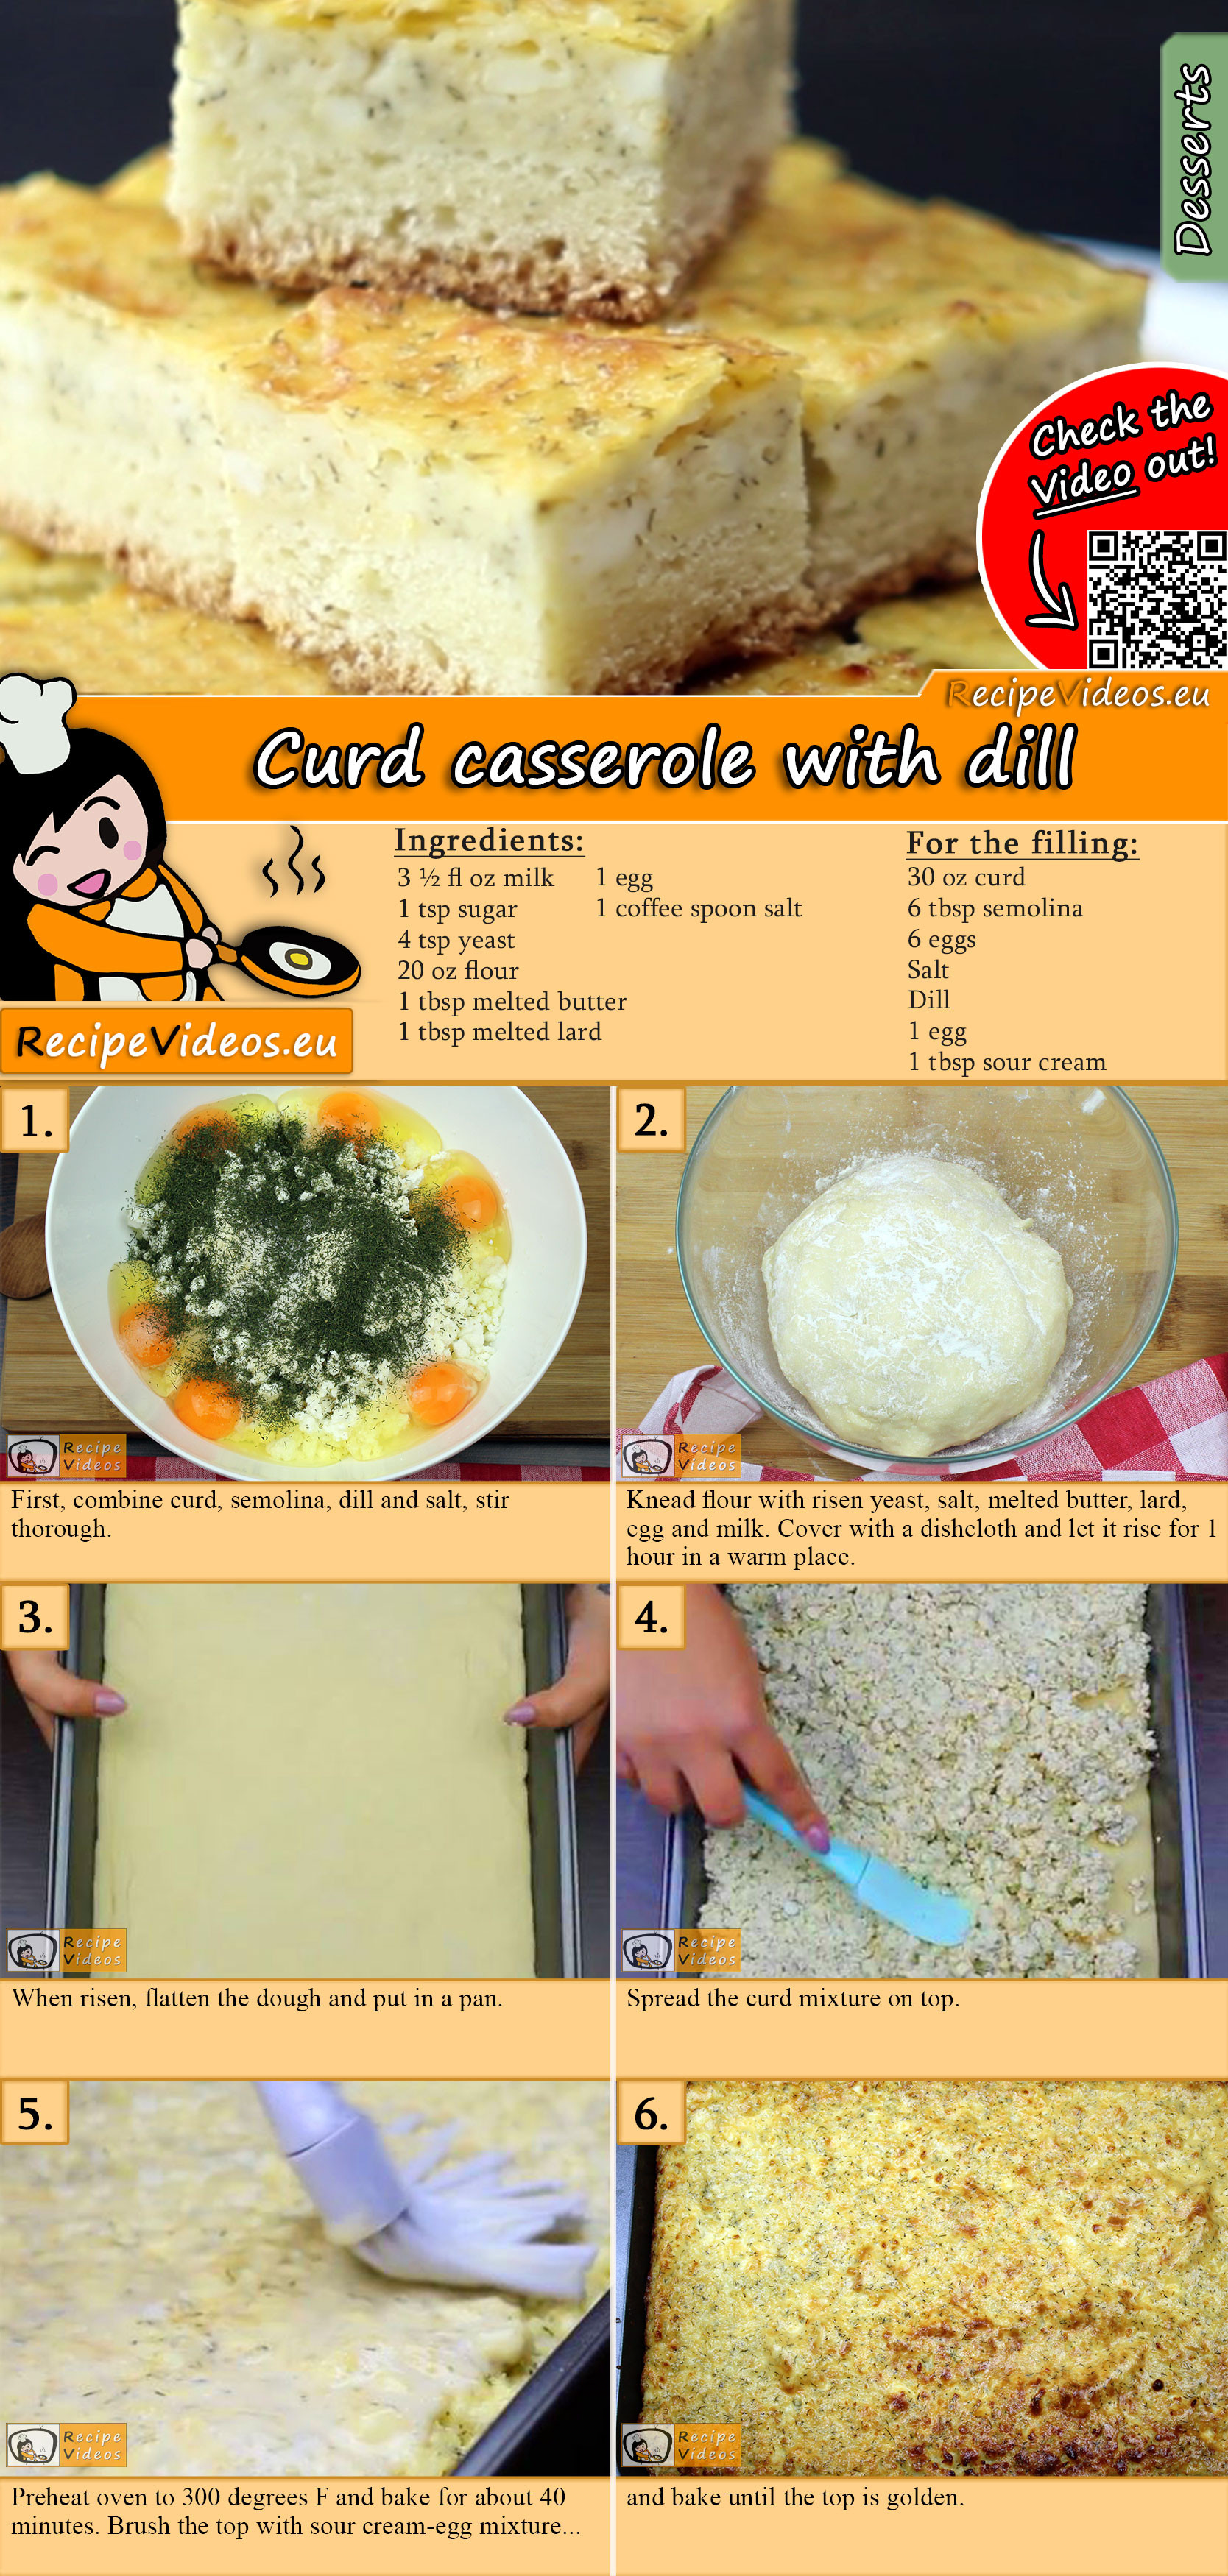 Curd casserole with dill recipe with video